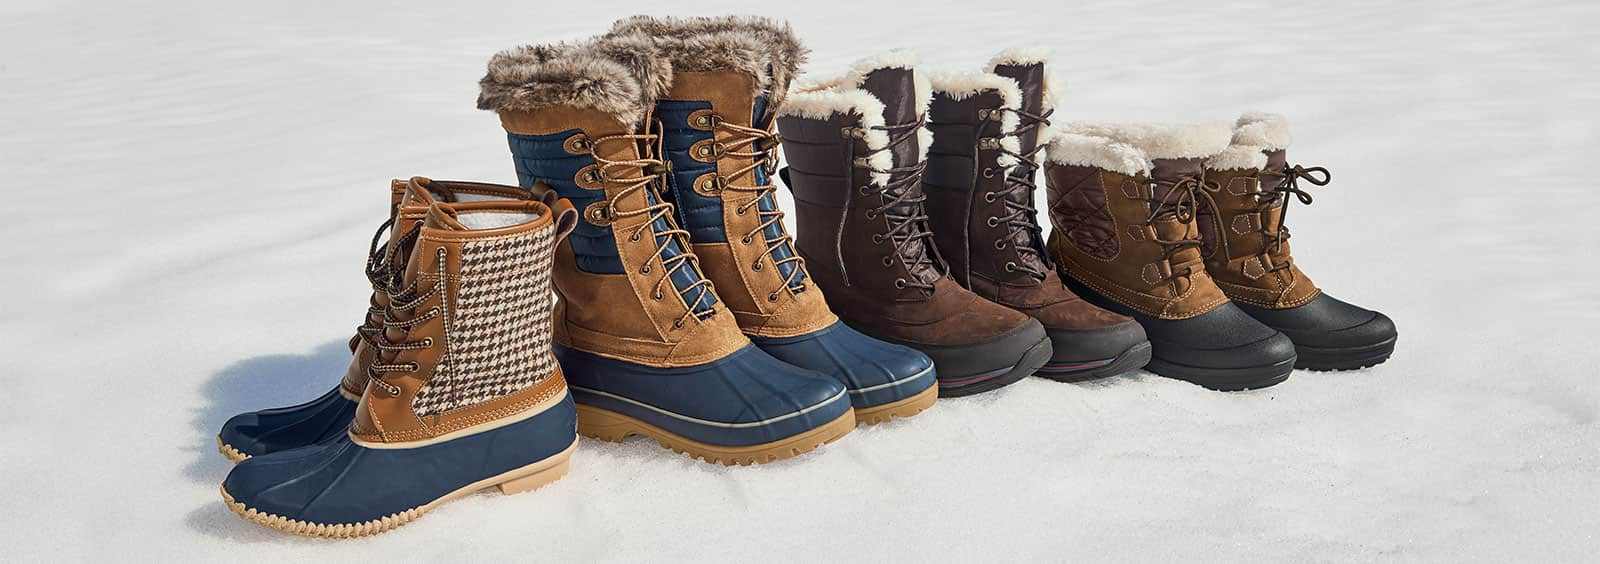 What to Look for in a Great Pair of Winter Boots | Lands' End